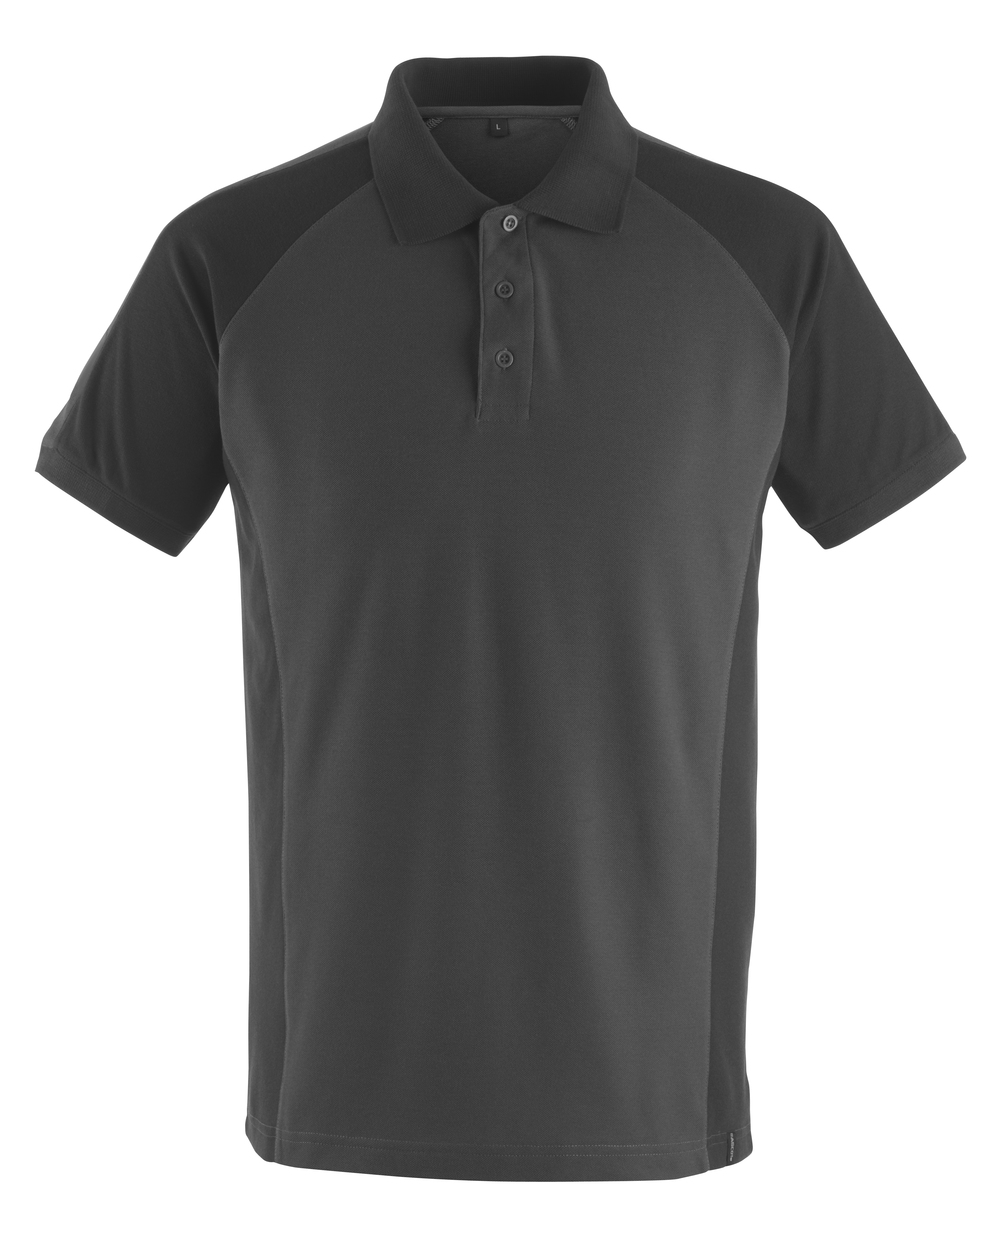 MASCOT BOTTROP POLO SHIRT